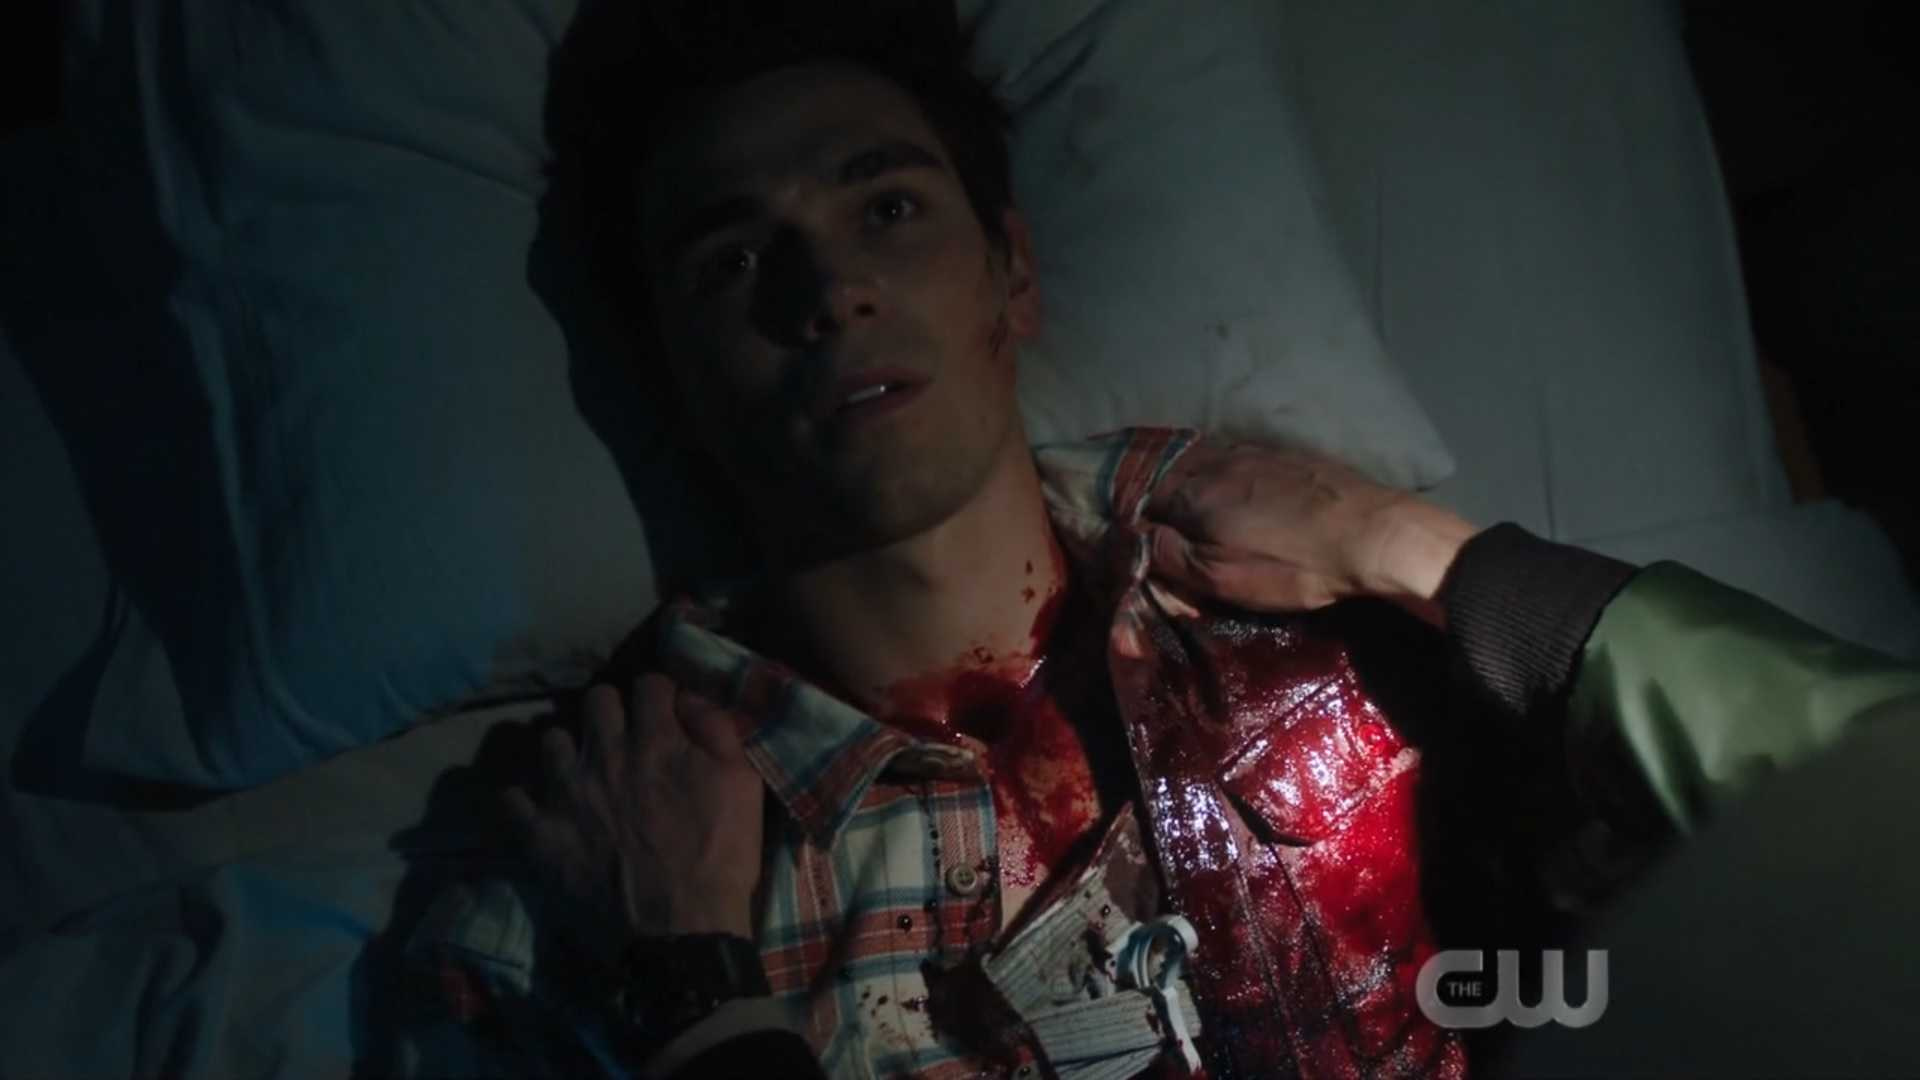 Is Archie Andrews dead?